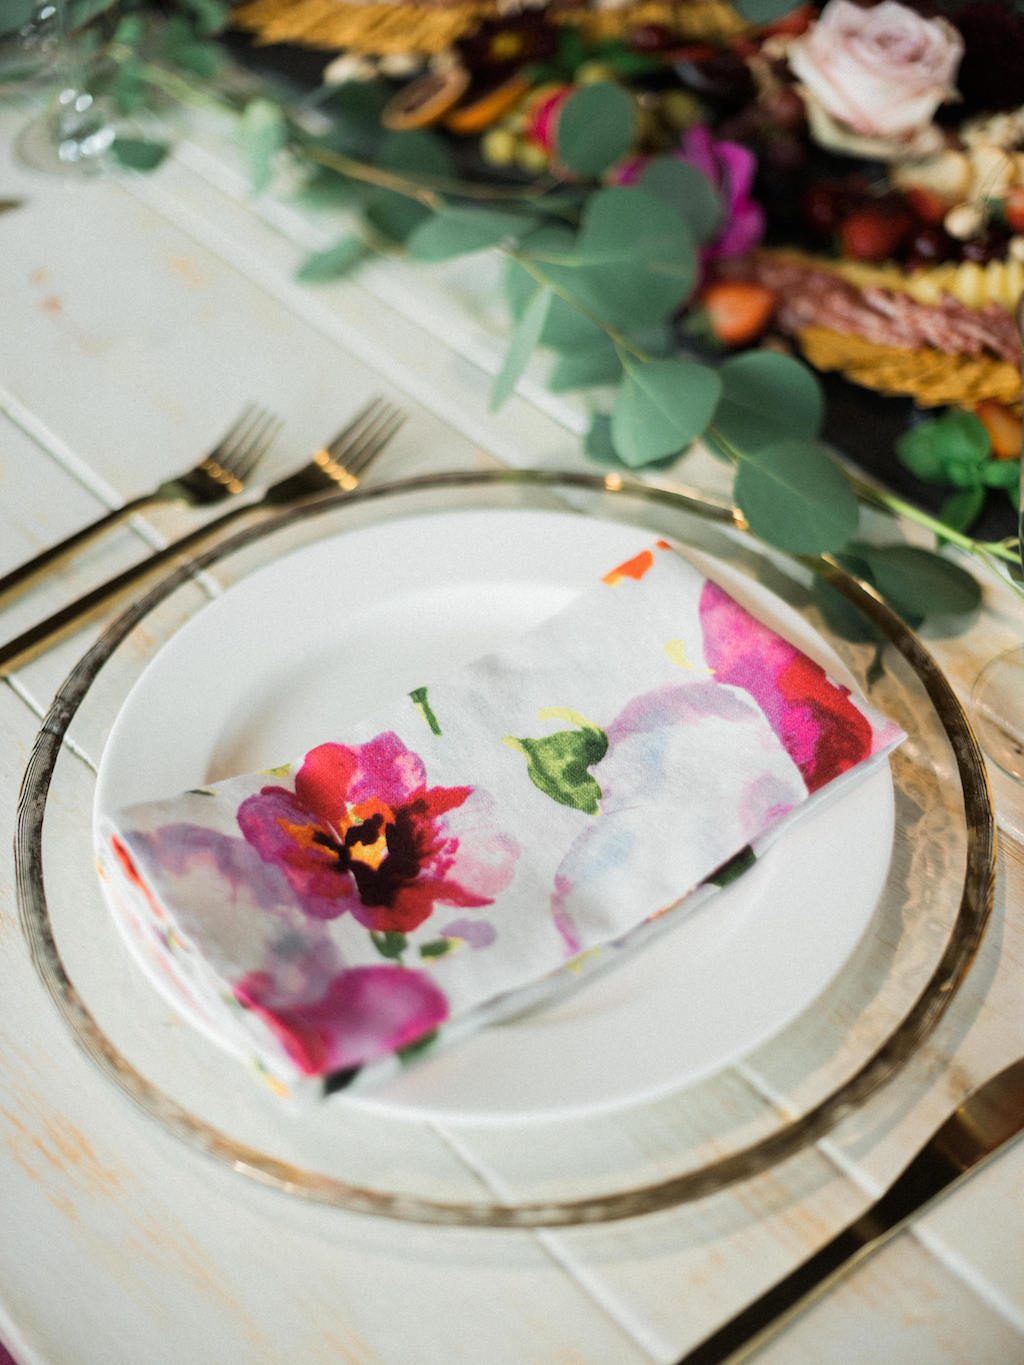 Modern Fuchsia Wedding Reception Table Setting with Watercolor Printed Napkin, Gold Flatware, Glass Charger   Dish and Charger Rentals by A Chair Affair